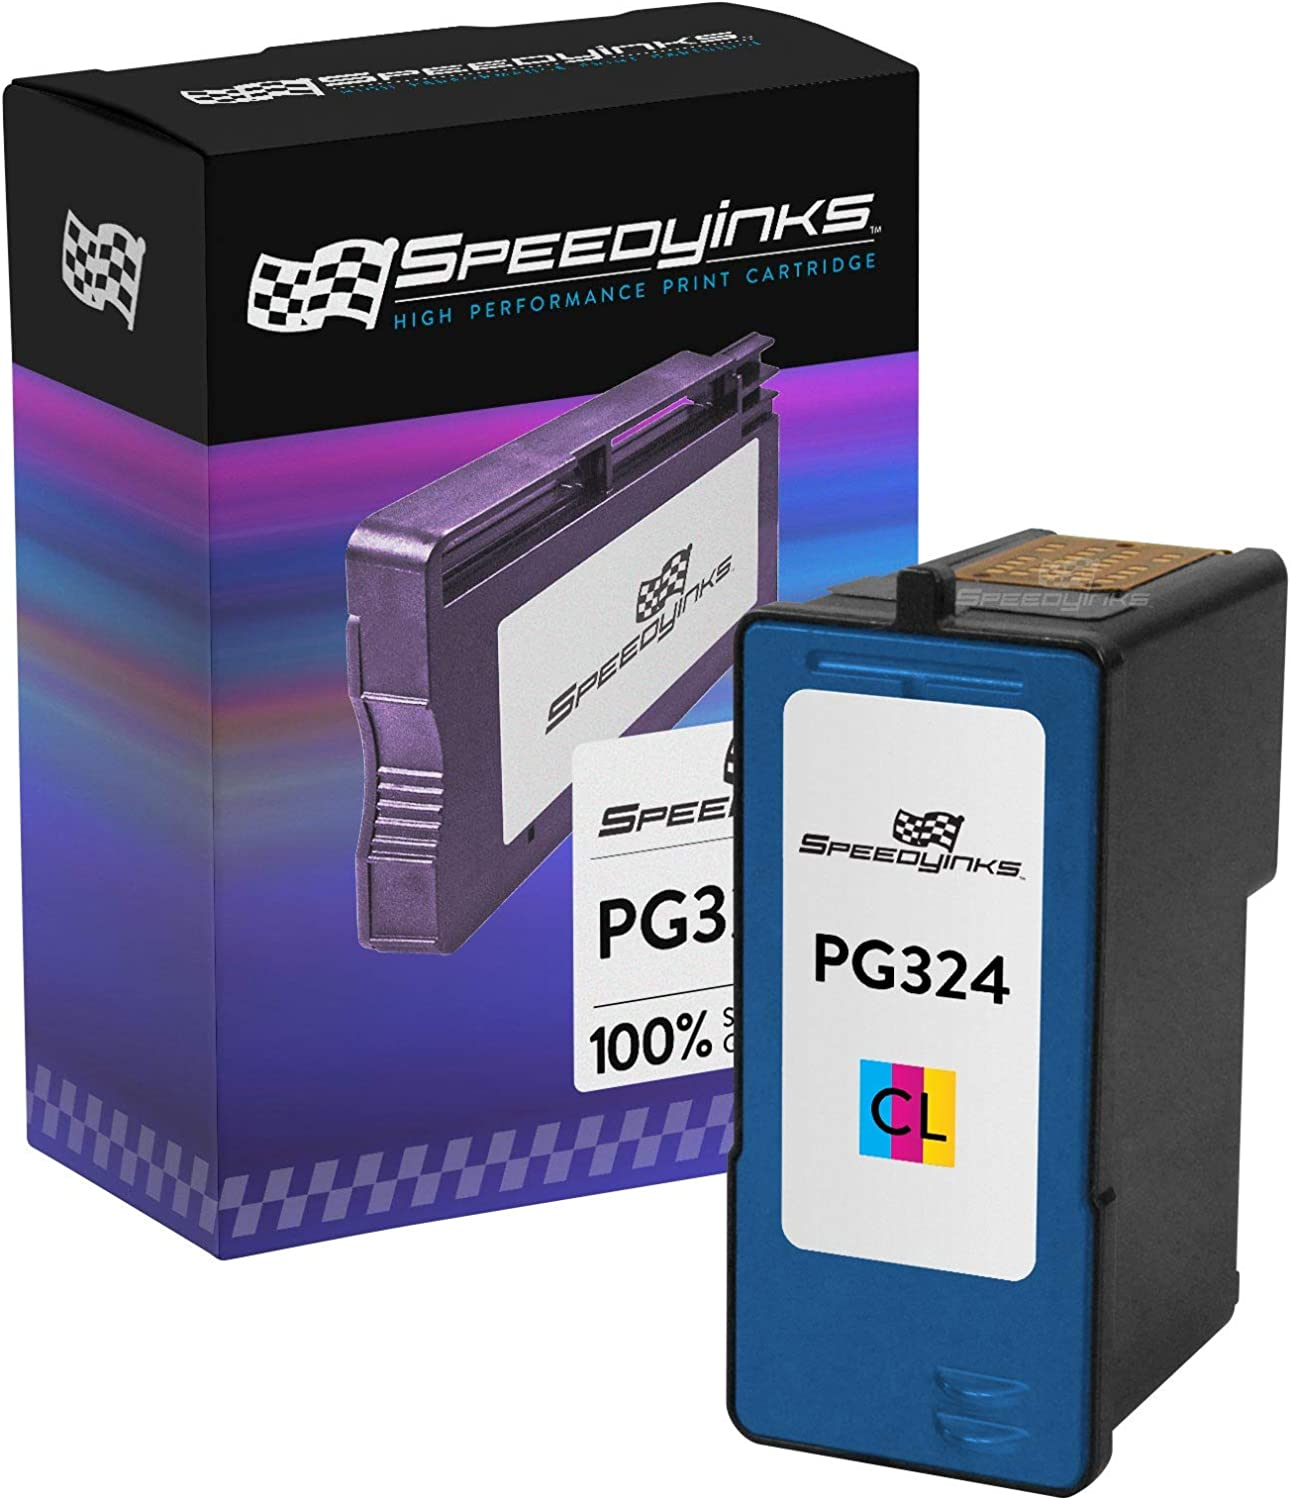 Speedy Inks Remanufactured Ink Cartridge Replacement for Dell JF333 Series 6 (Color)